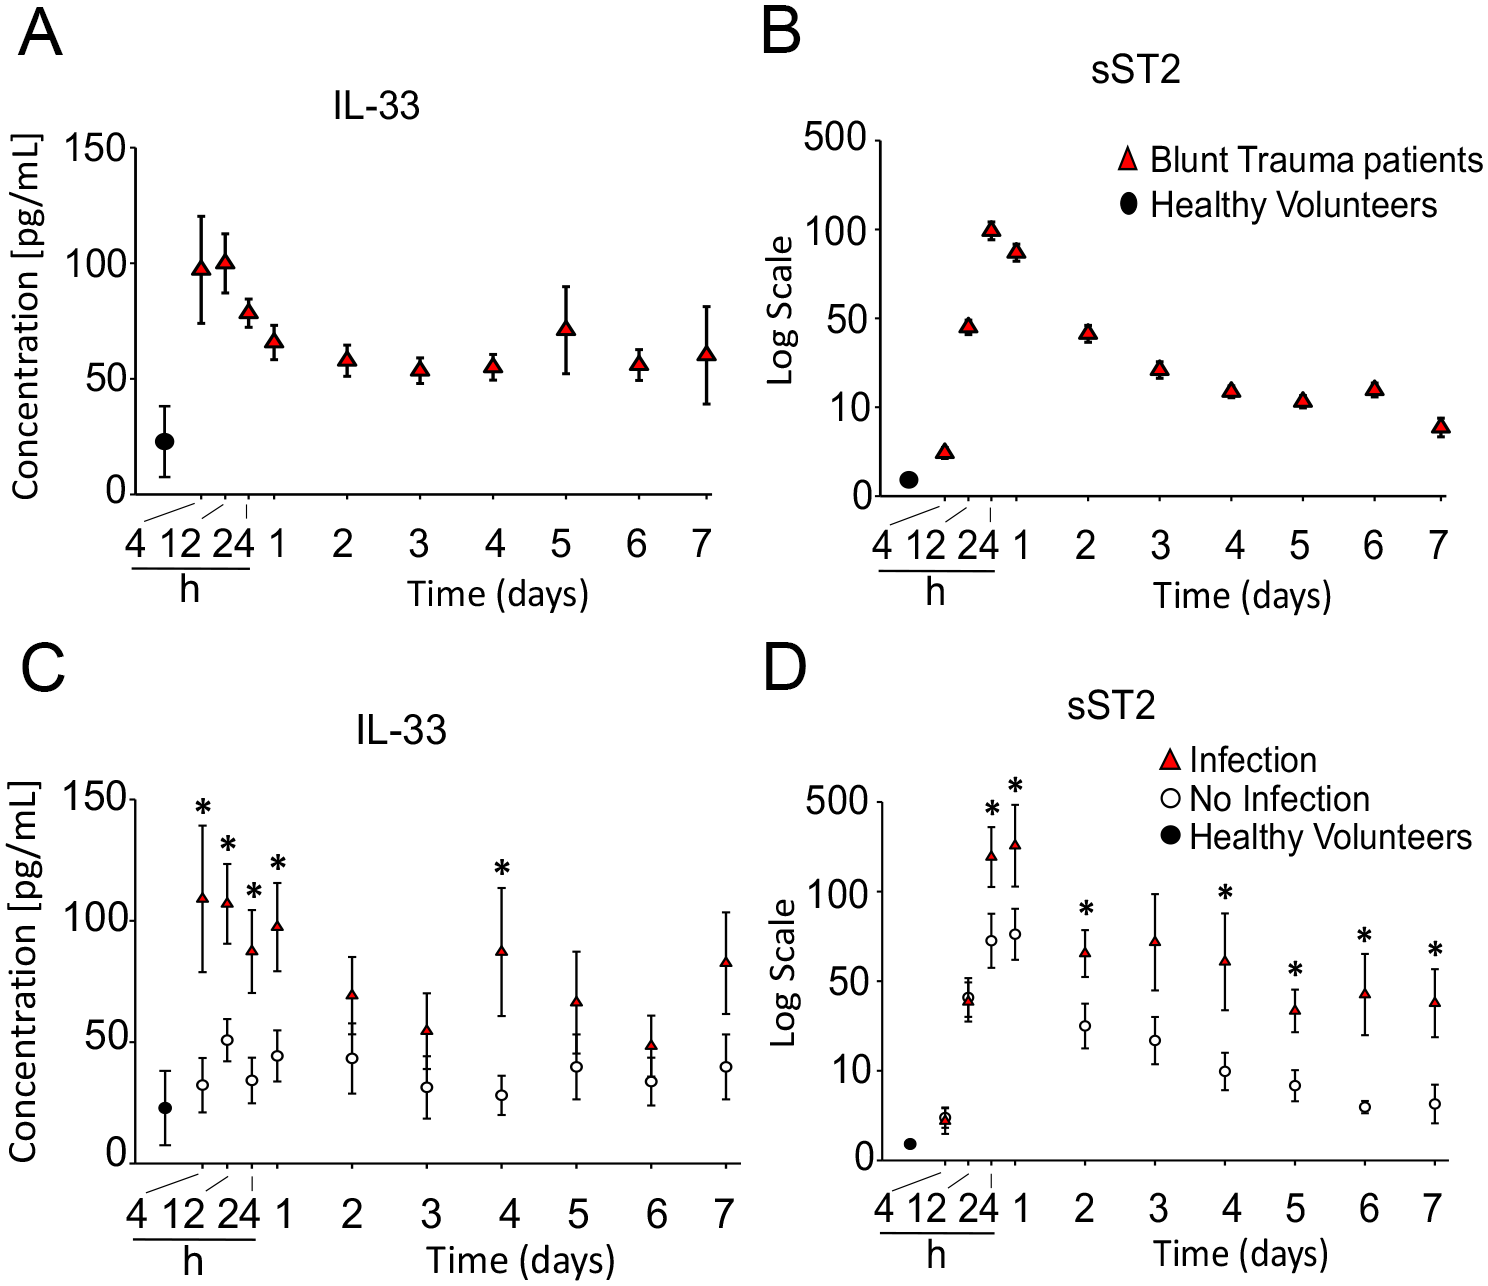 Time course analysis of mean circulating levels of interleukin (IL) 33 and soluble suppression of tumorigenicity (sST2) in blunt trauma patients.